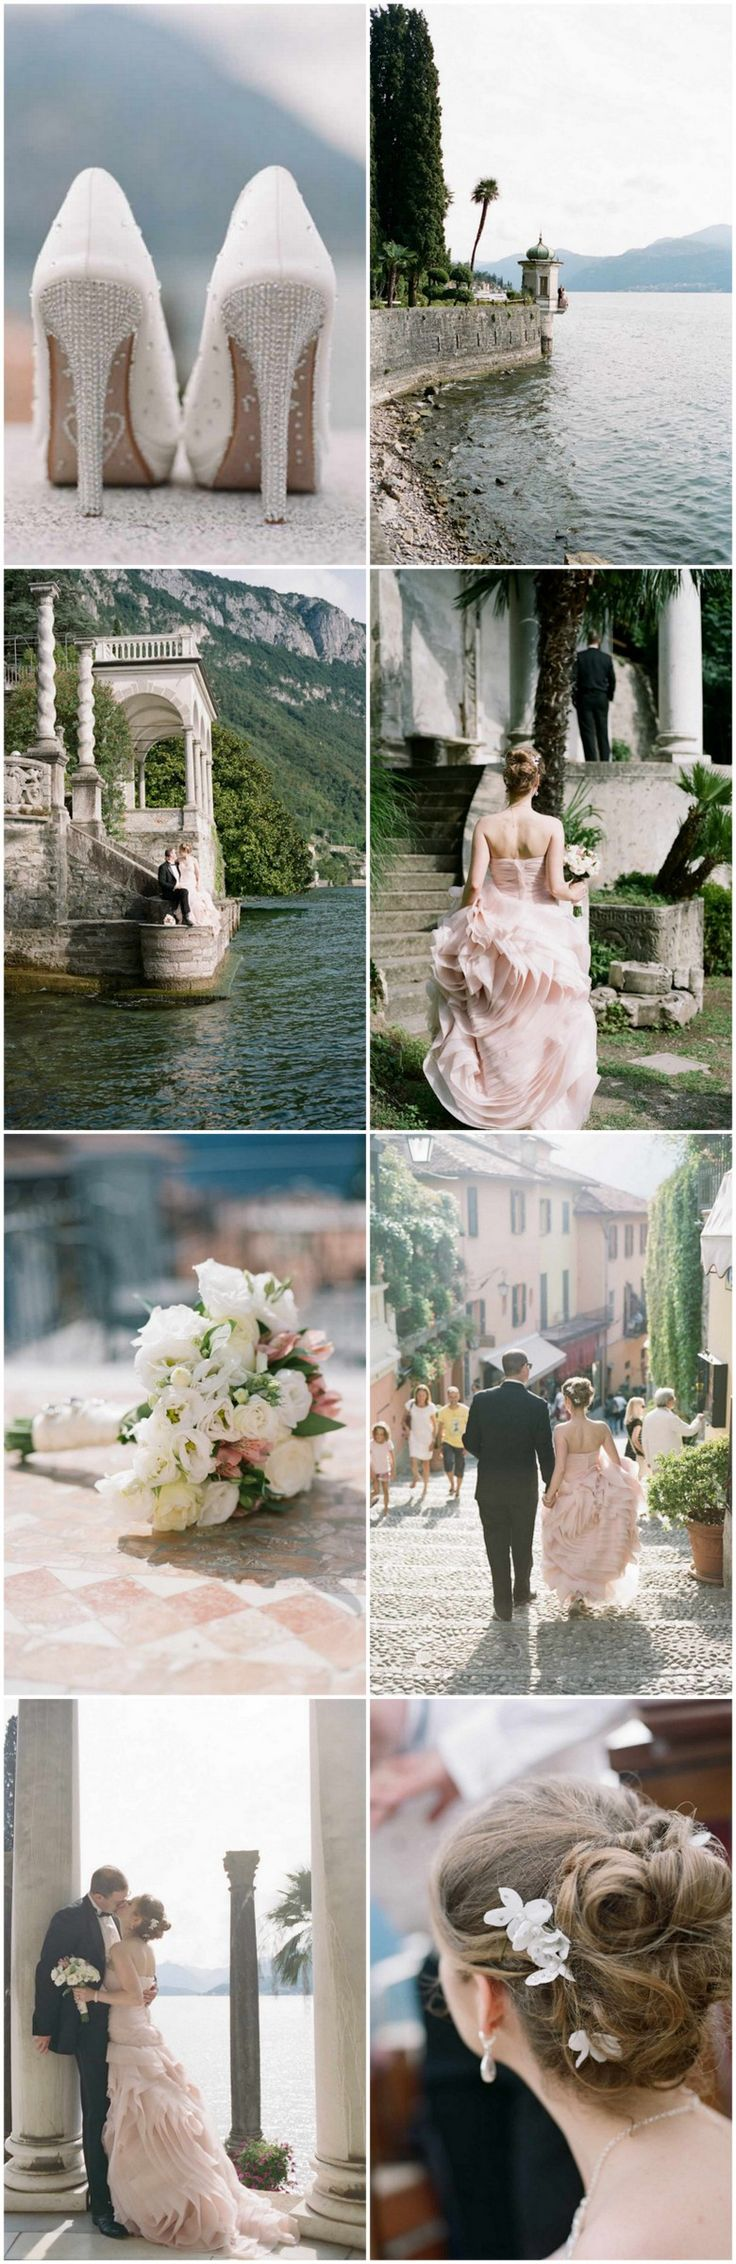 Elegant Lake Como Elopement in Italy with a gorgeous BLUSH PINK Vera Wang wedding gown. What!?! Pics: Rochelle Cheever Photography